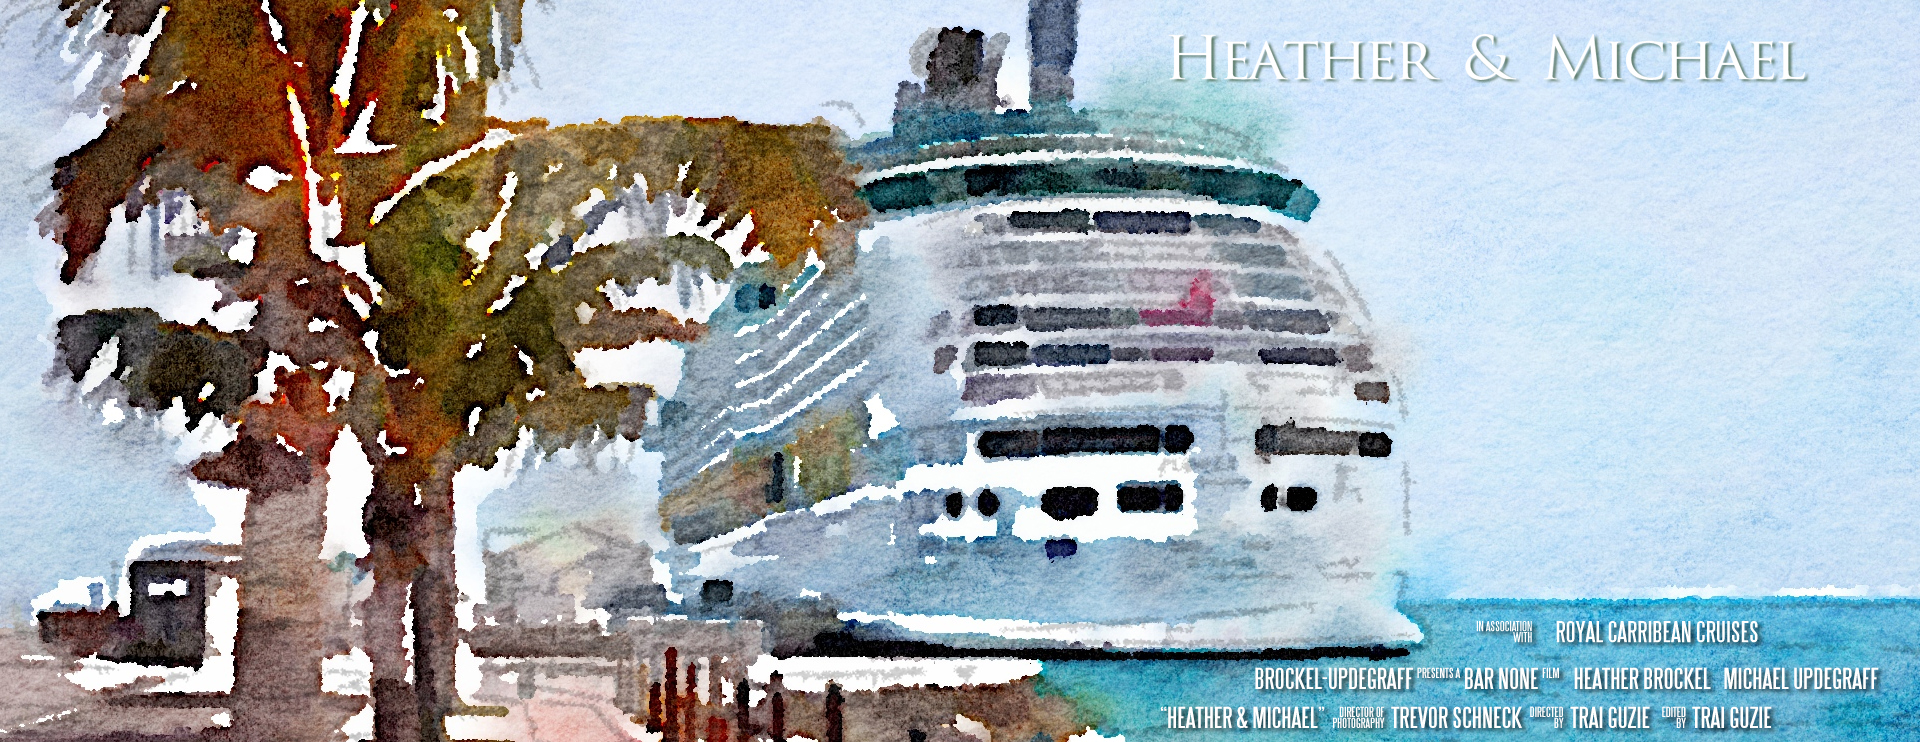 Heather & Michael – Bermuda Cruise – Destination Wedding Film